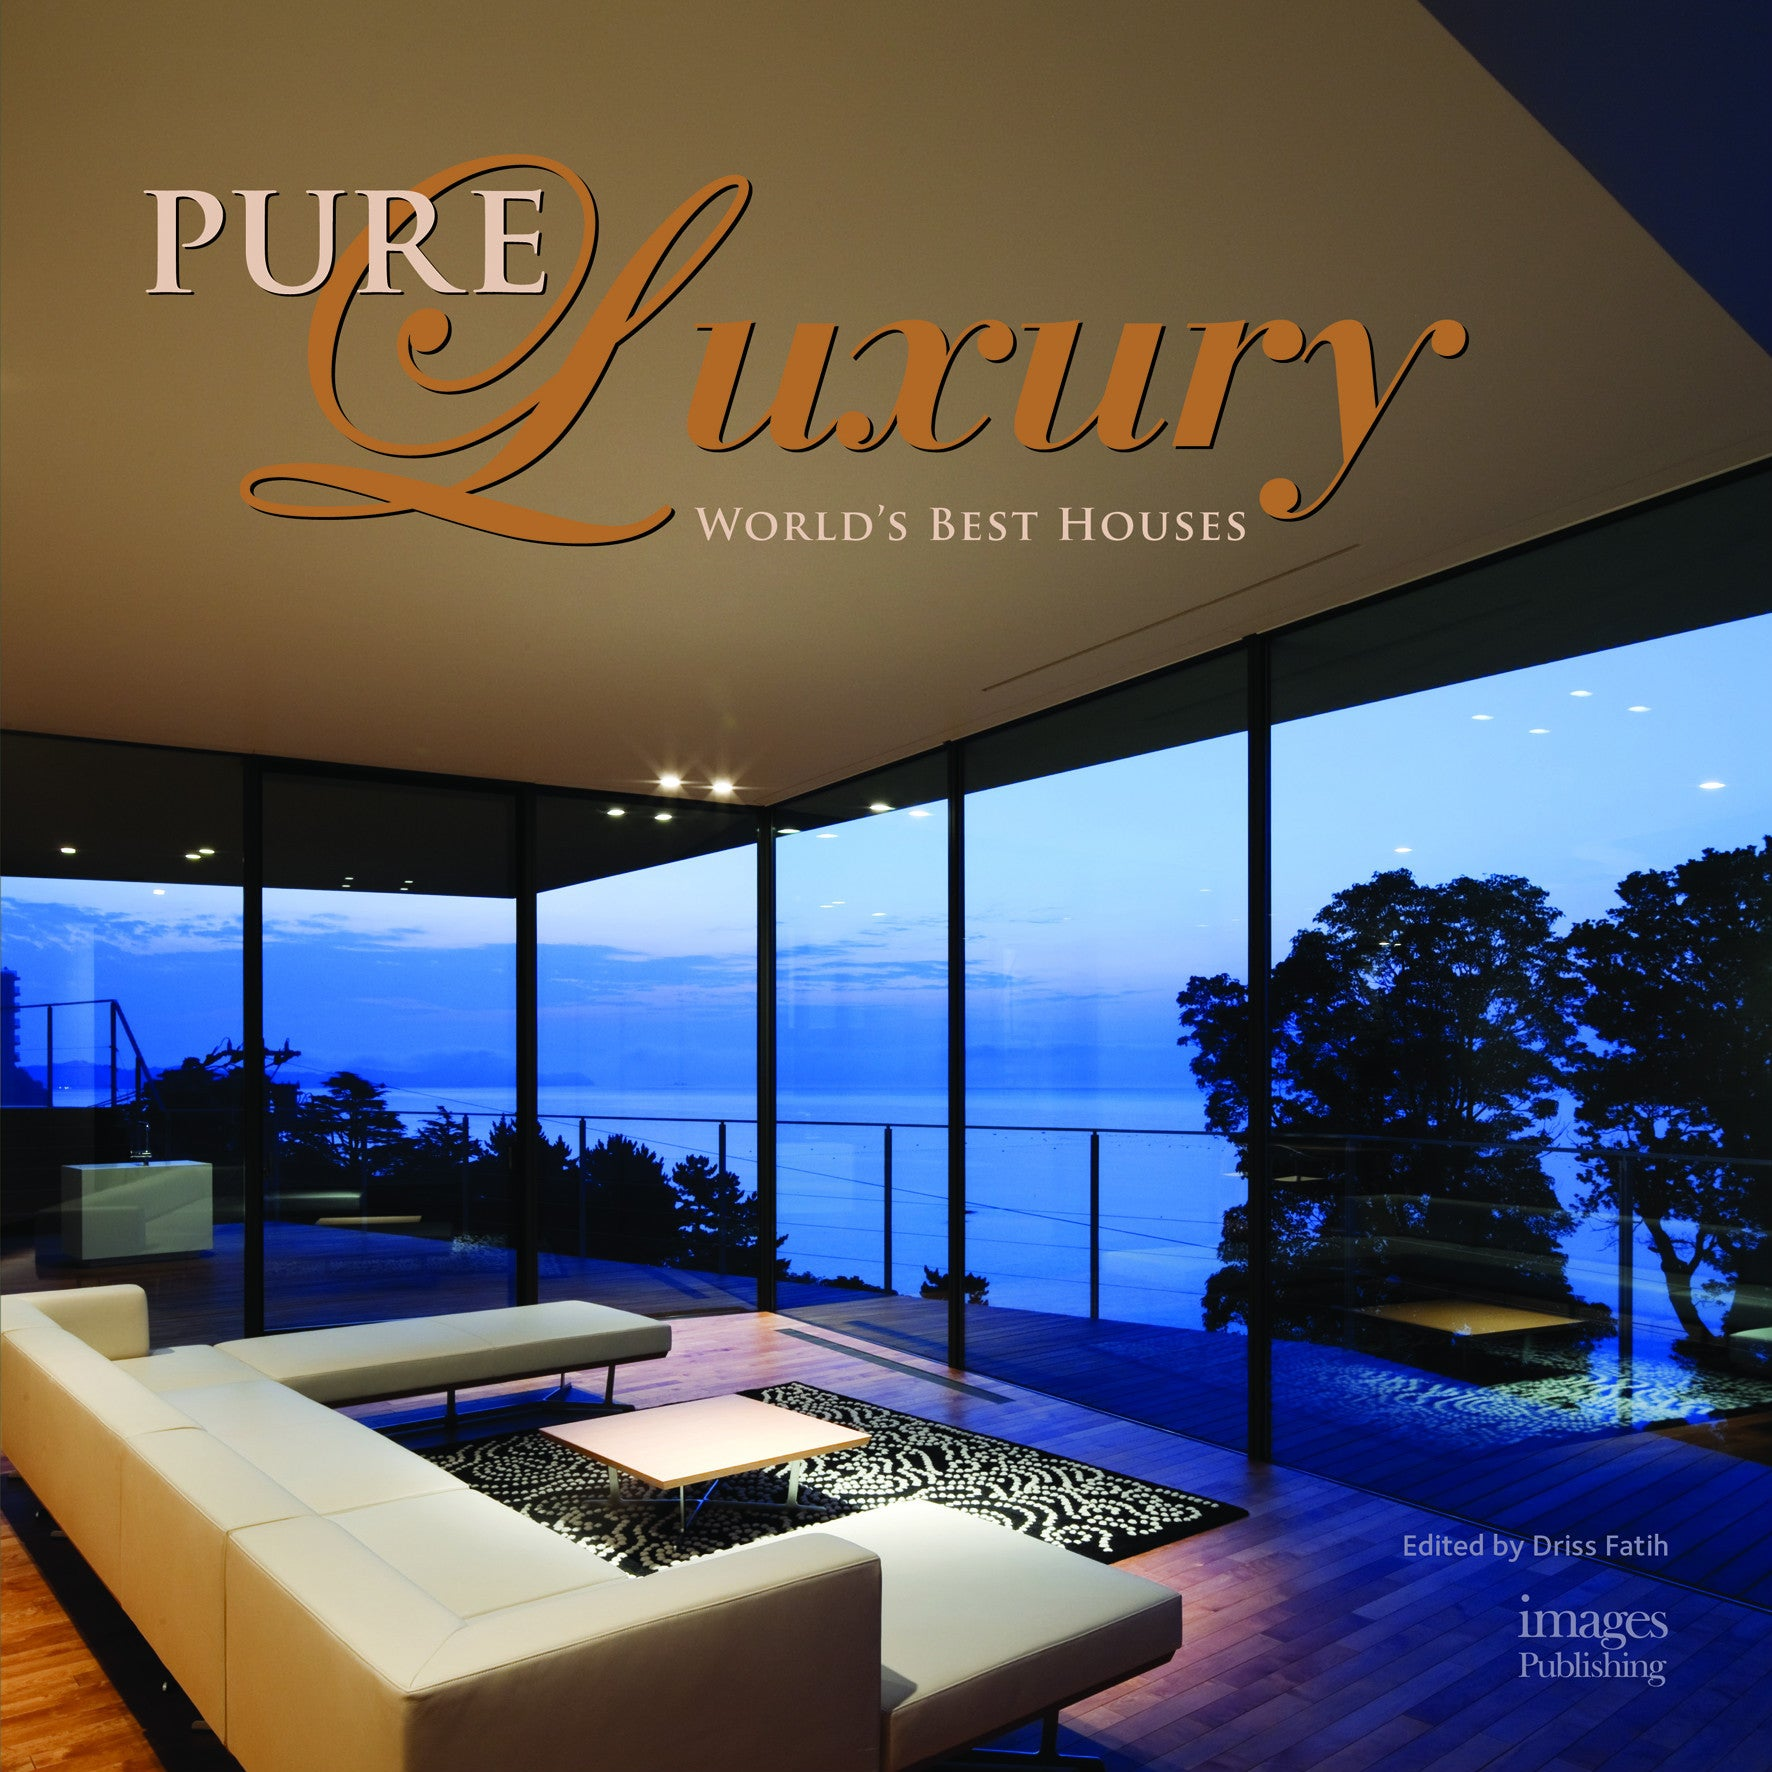 Pure luxury worlds best houses